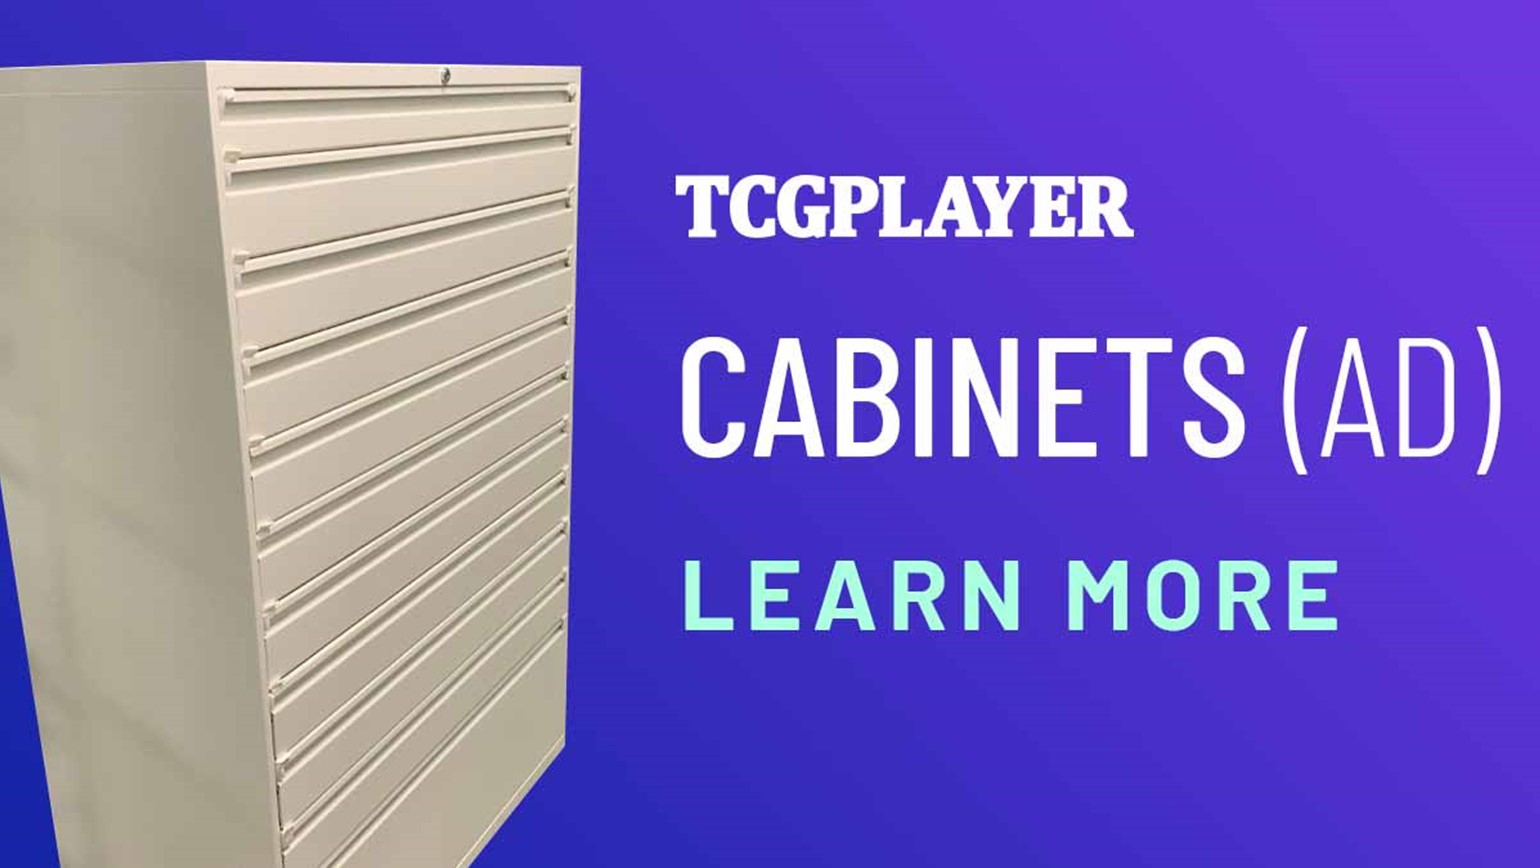 TCGplayer Fulfillment Center Cabinets (Ad)